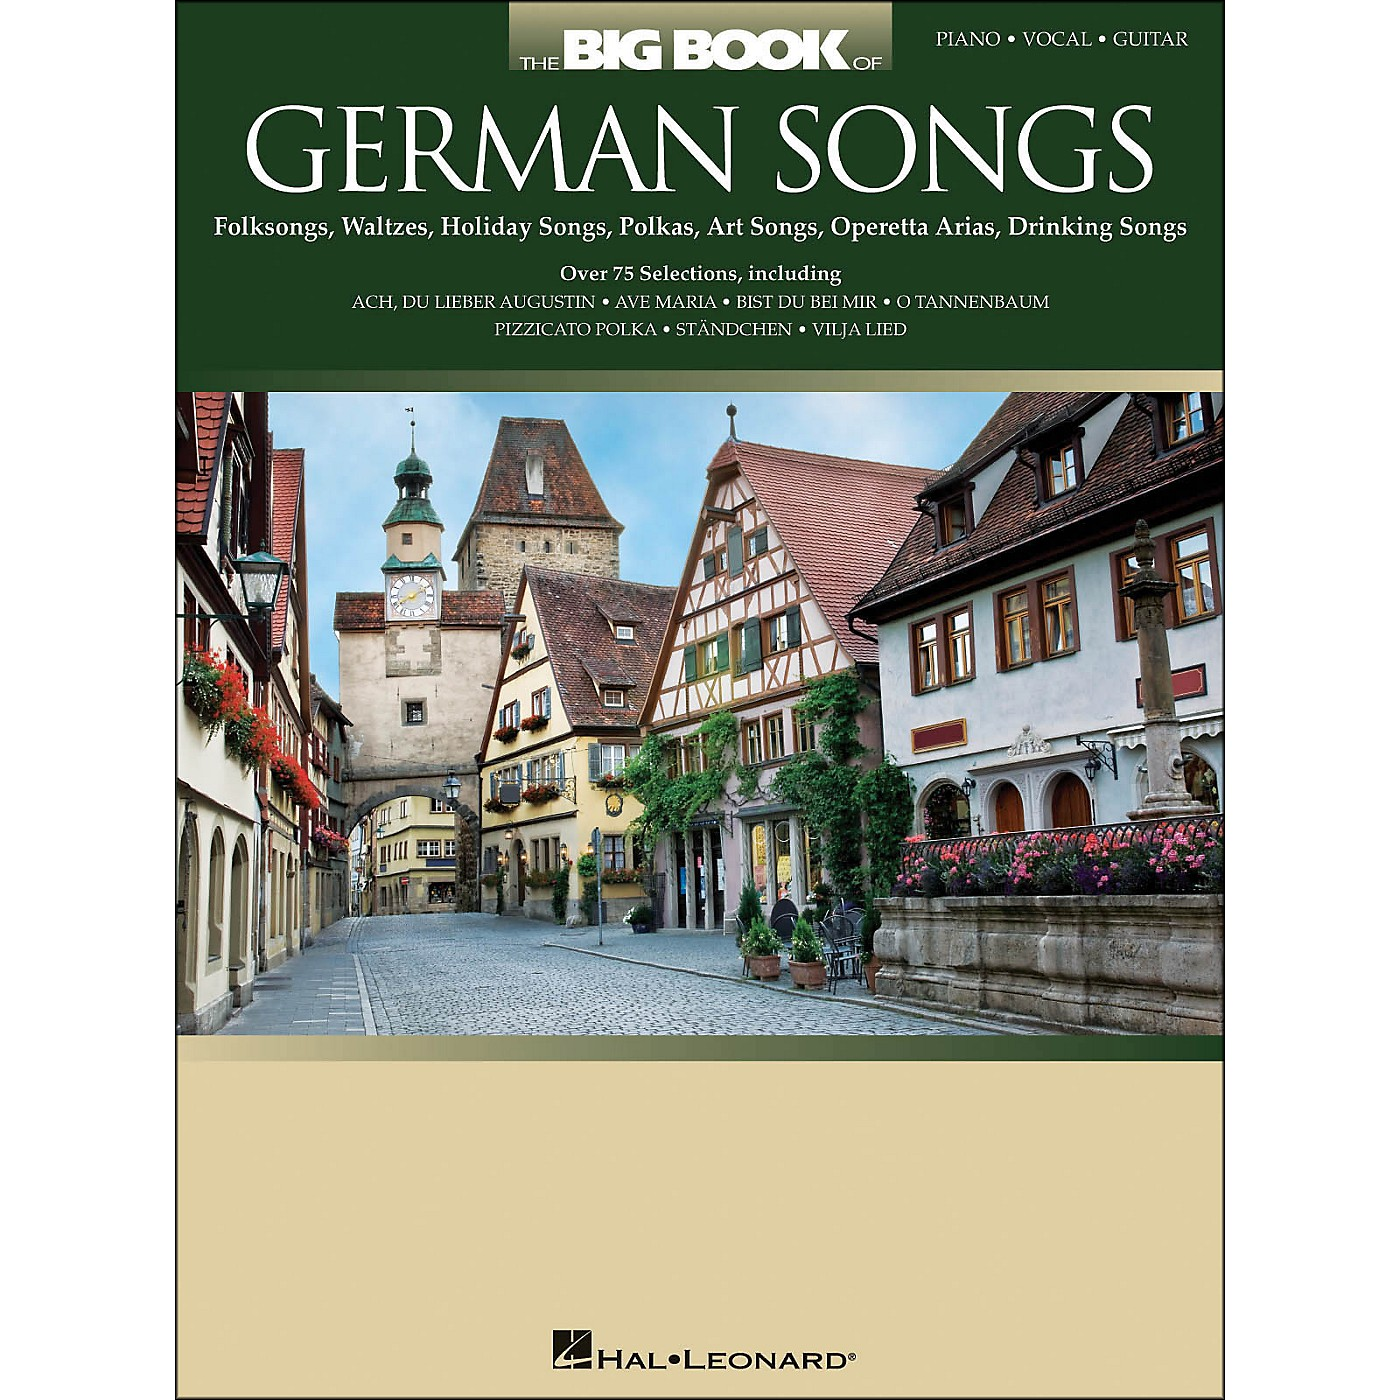 Hal Leonard The Big Book Of German Songs arranged for piano, vocal, and guitar (P/V/G) thumbnail